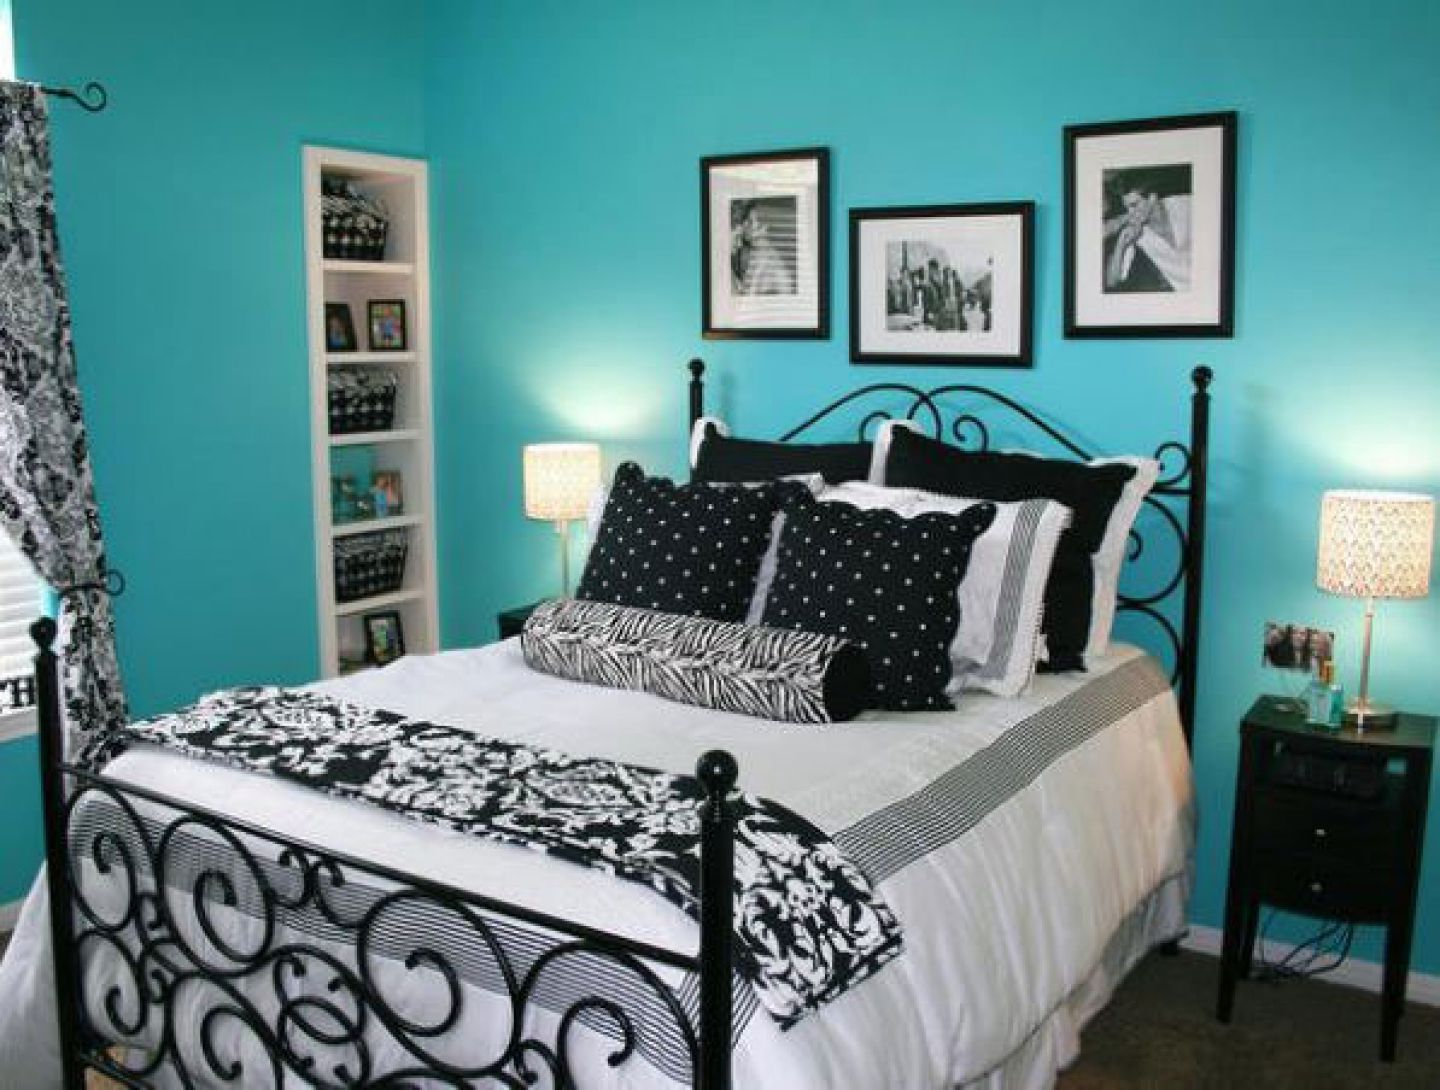 Bedroom paint designs black and white - Wonderful Blue Themes Teenage Girl Room Ideas With Elegant Black Metal Bed Frame That Have White Bedding Complete With The Pillows And Beautiful Three